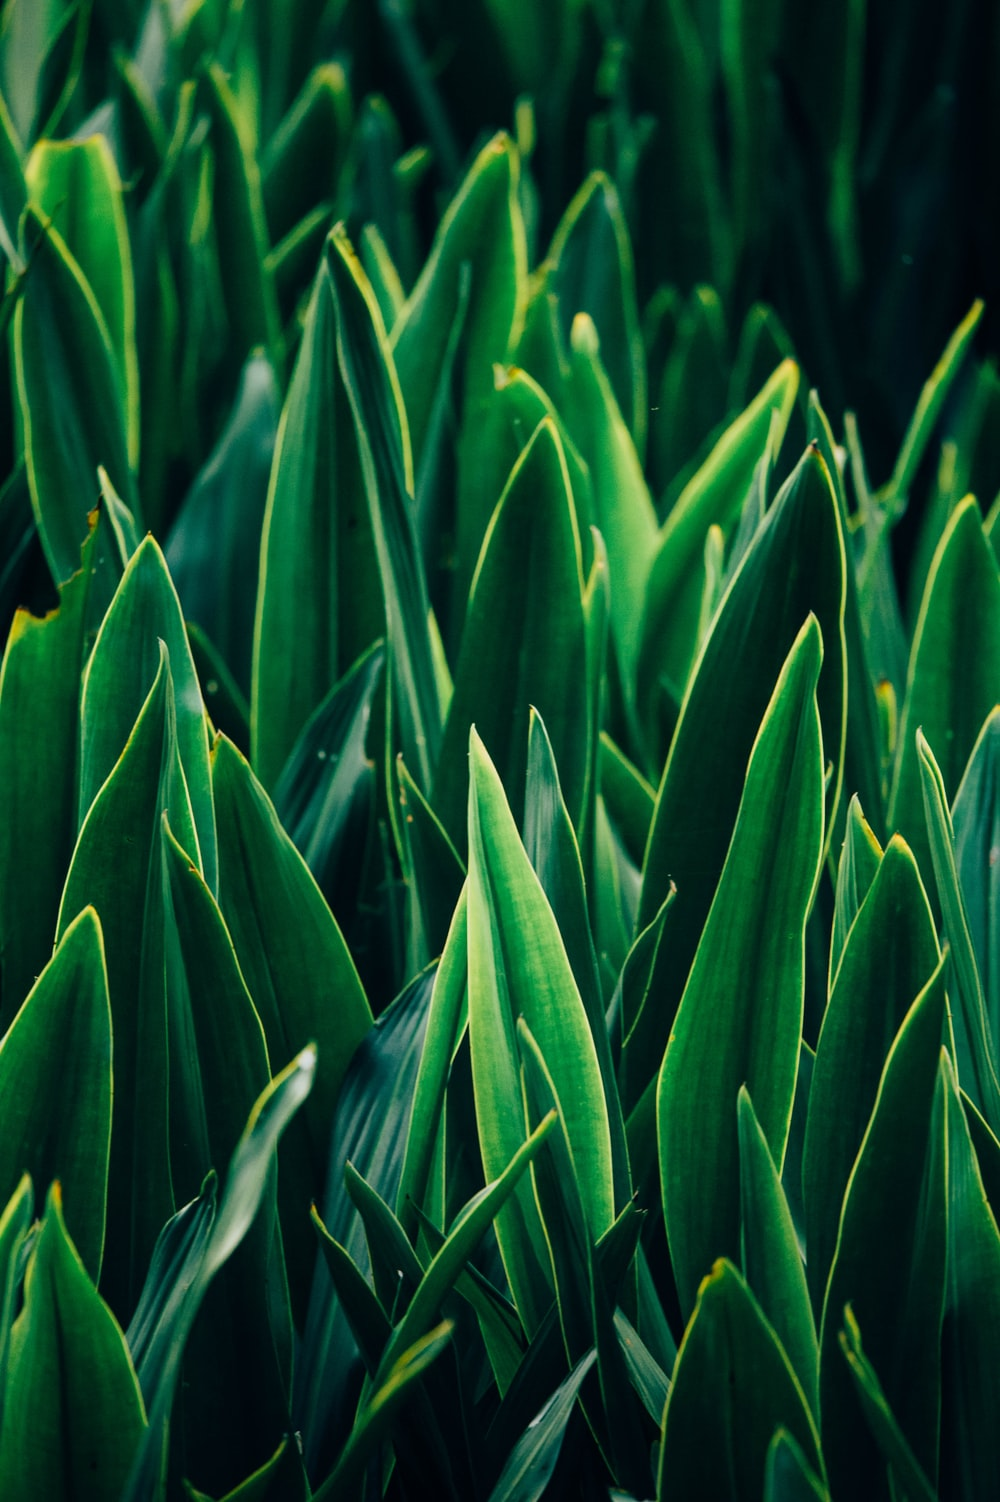 green linear leafed plants